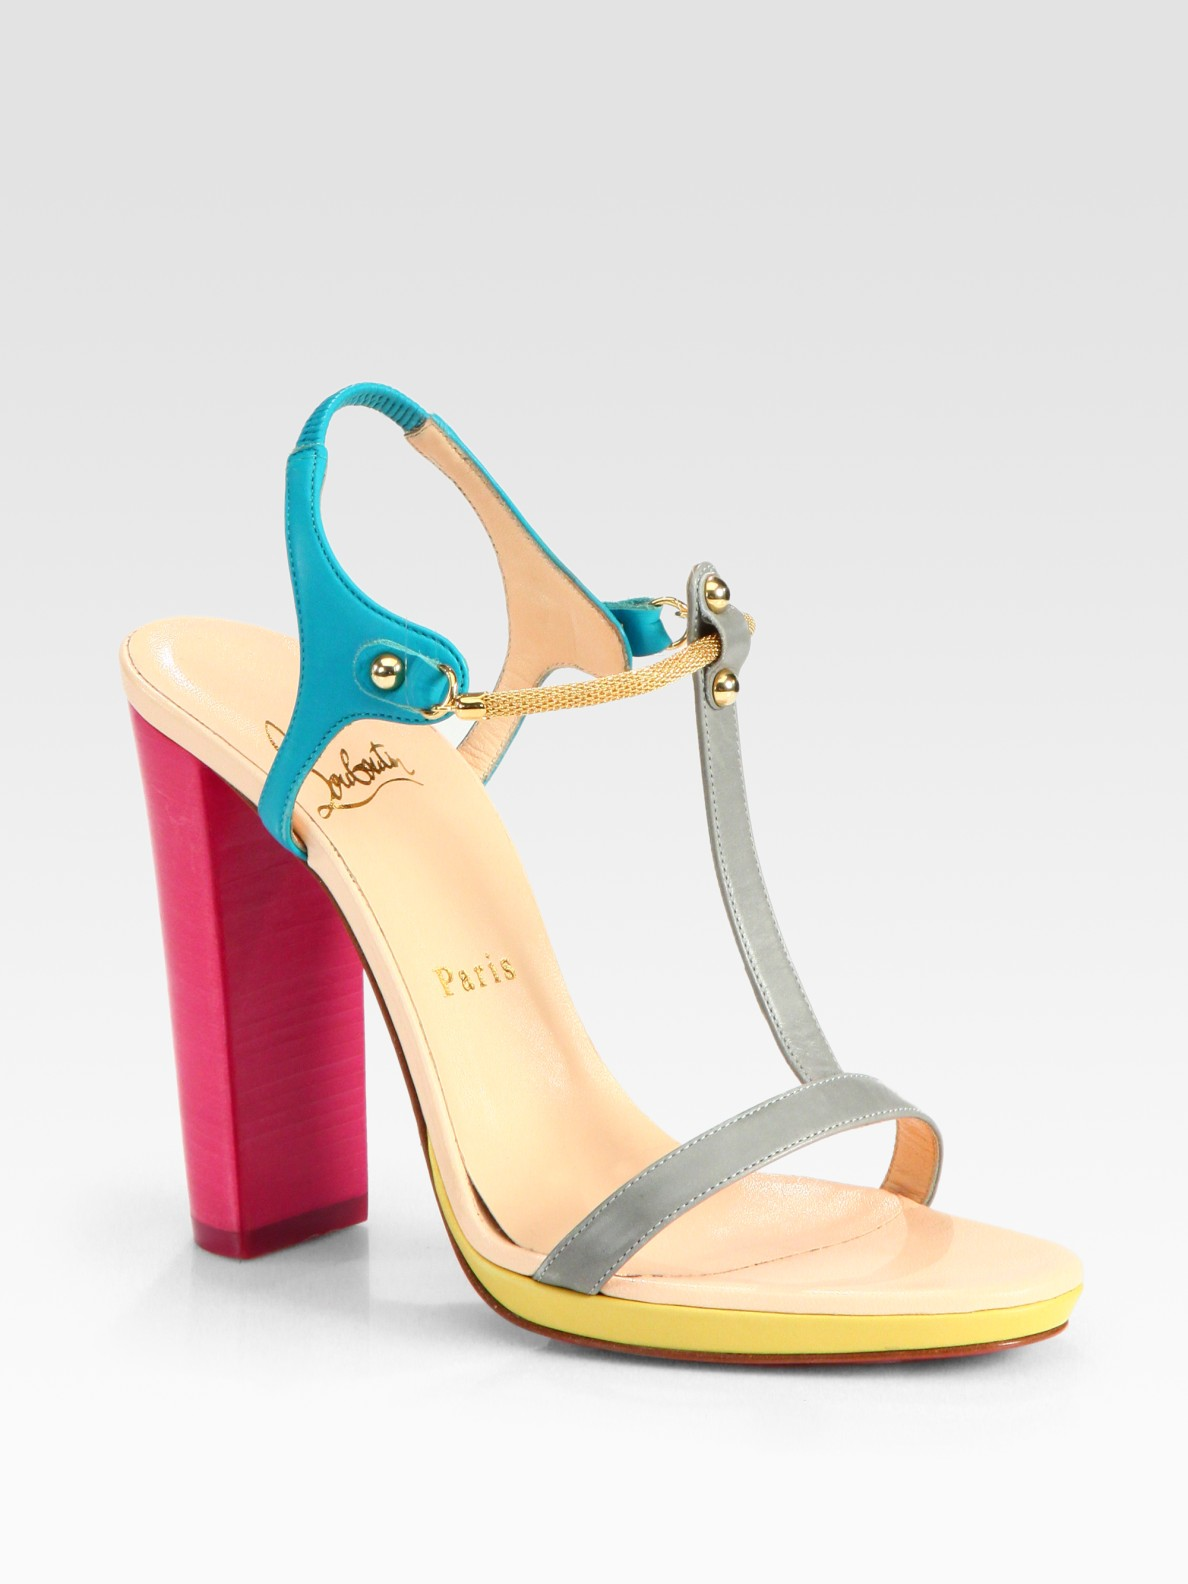 clearance newest prices cheap online Christian Louboutin Sylvieta 120 Colorblock Sandals cheap 100% original discount buy free shipping collections ZEUznR